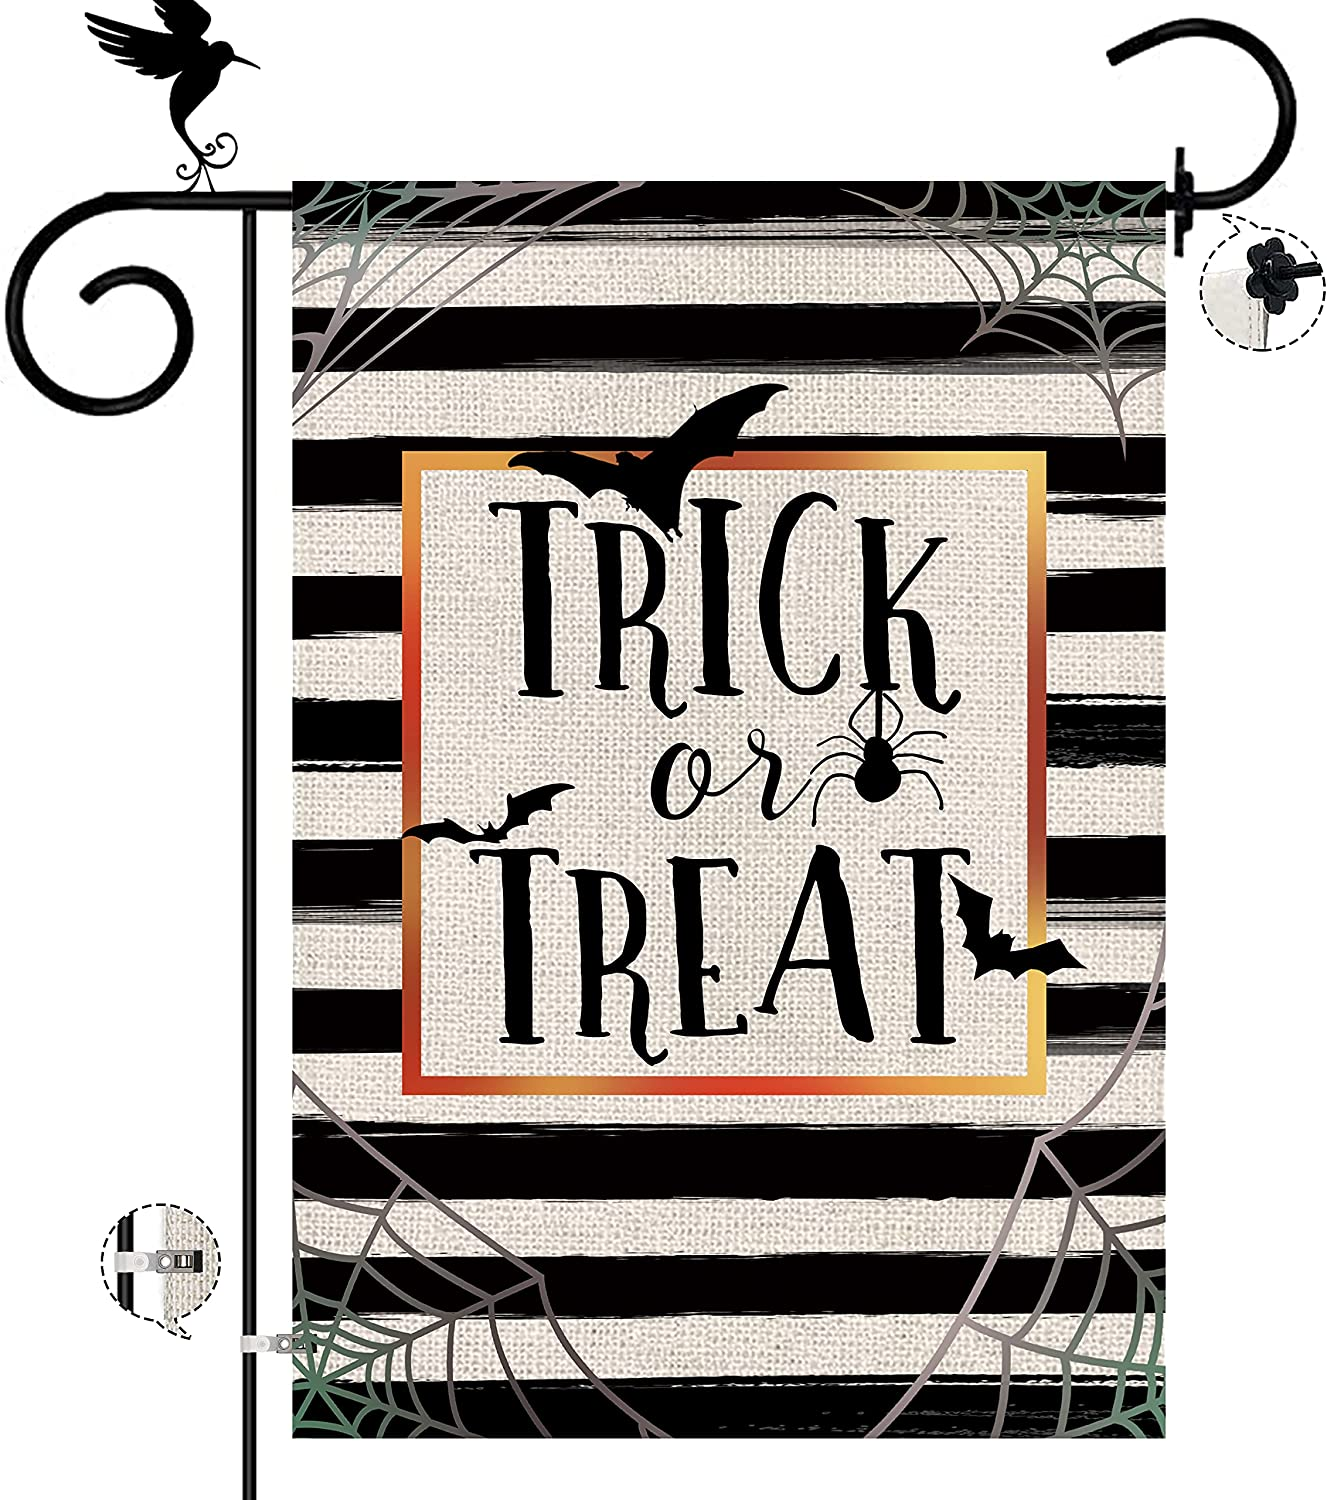 Halloween Garden Flag 12x18 Inch Trick or Treat Double Sided Vertical Buffalo Check Plaid Farmhouse Outdoor Decor Banner with Stopper Clip